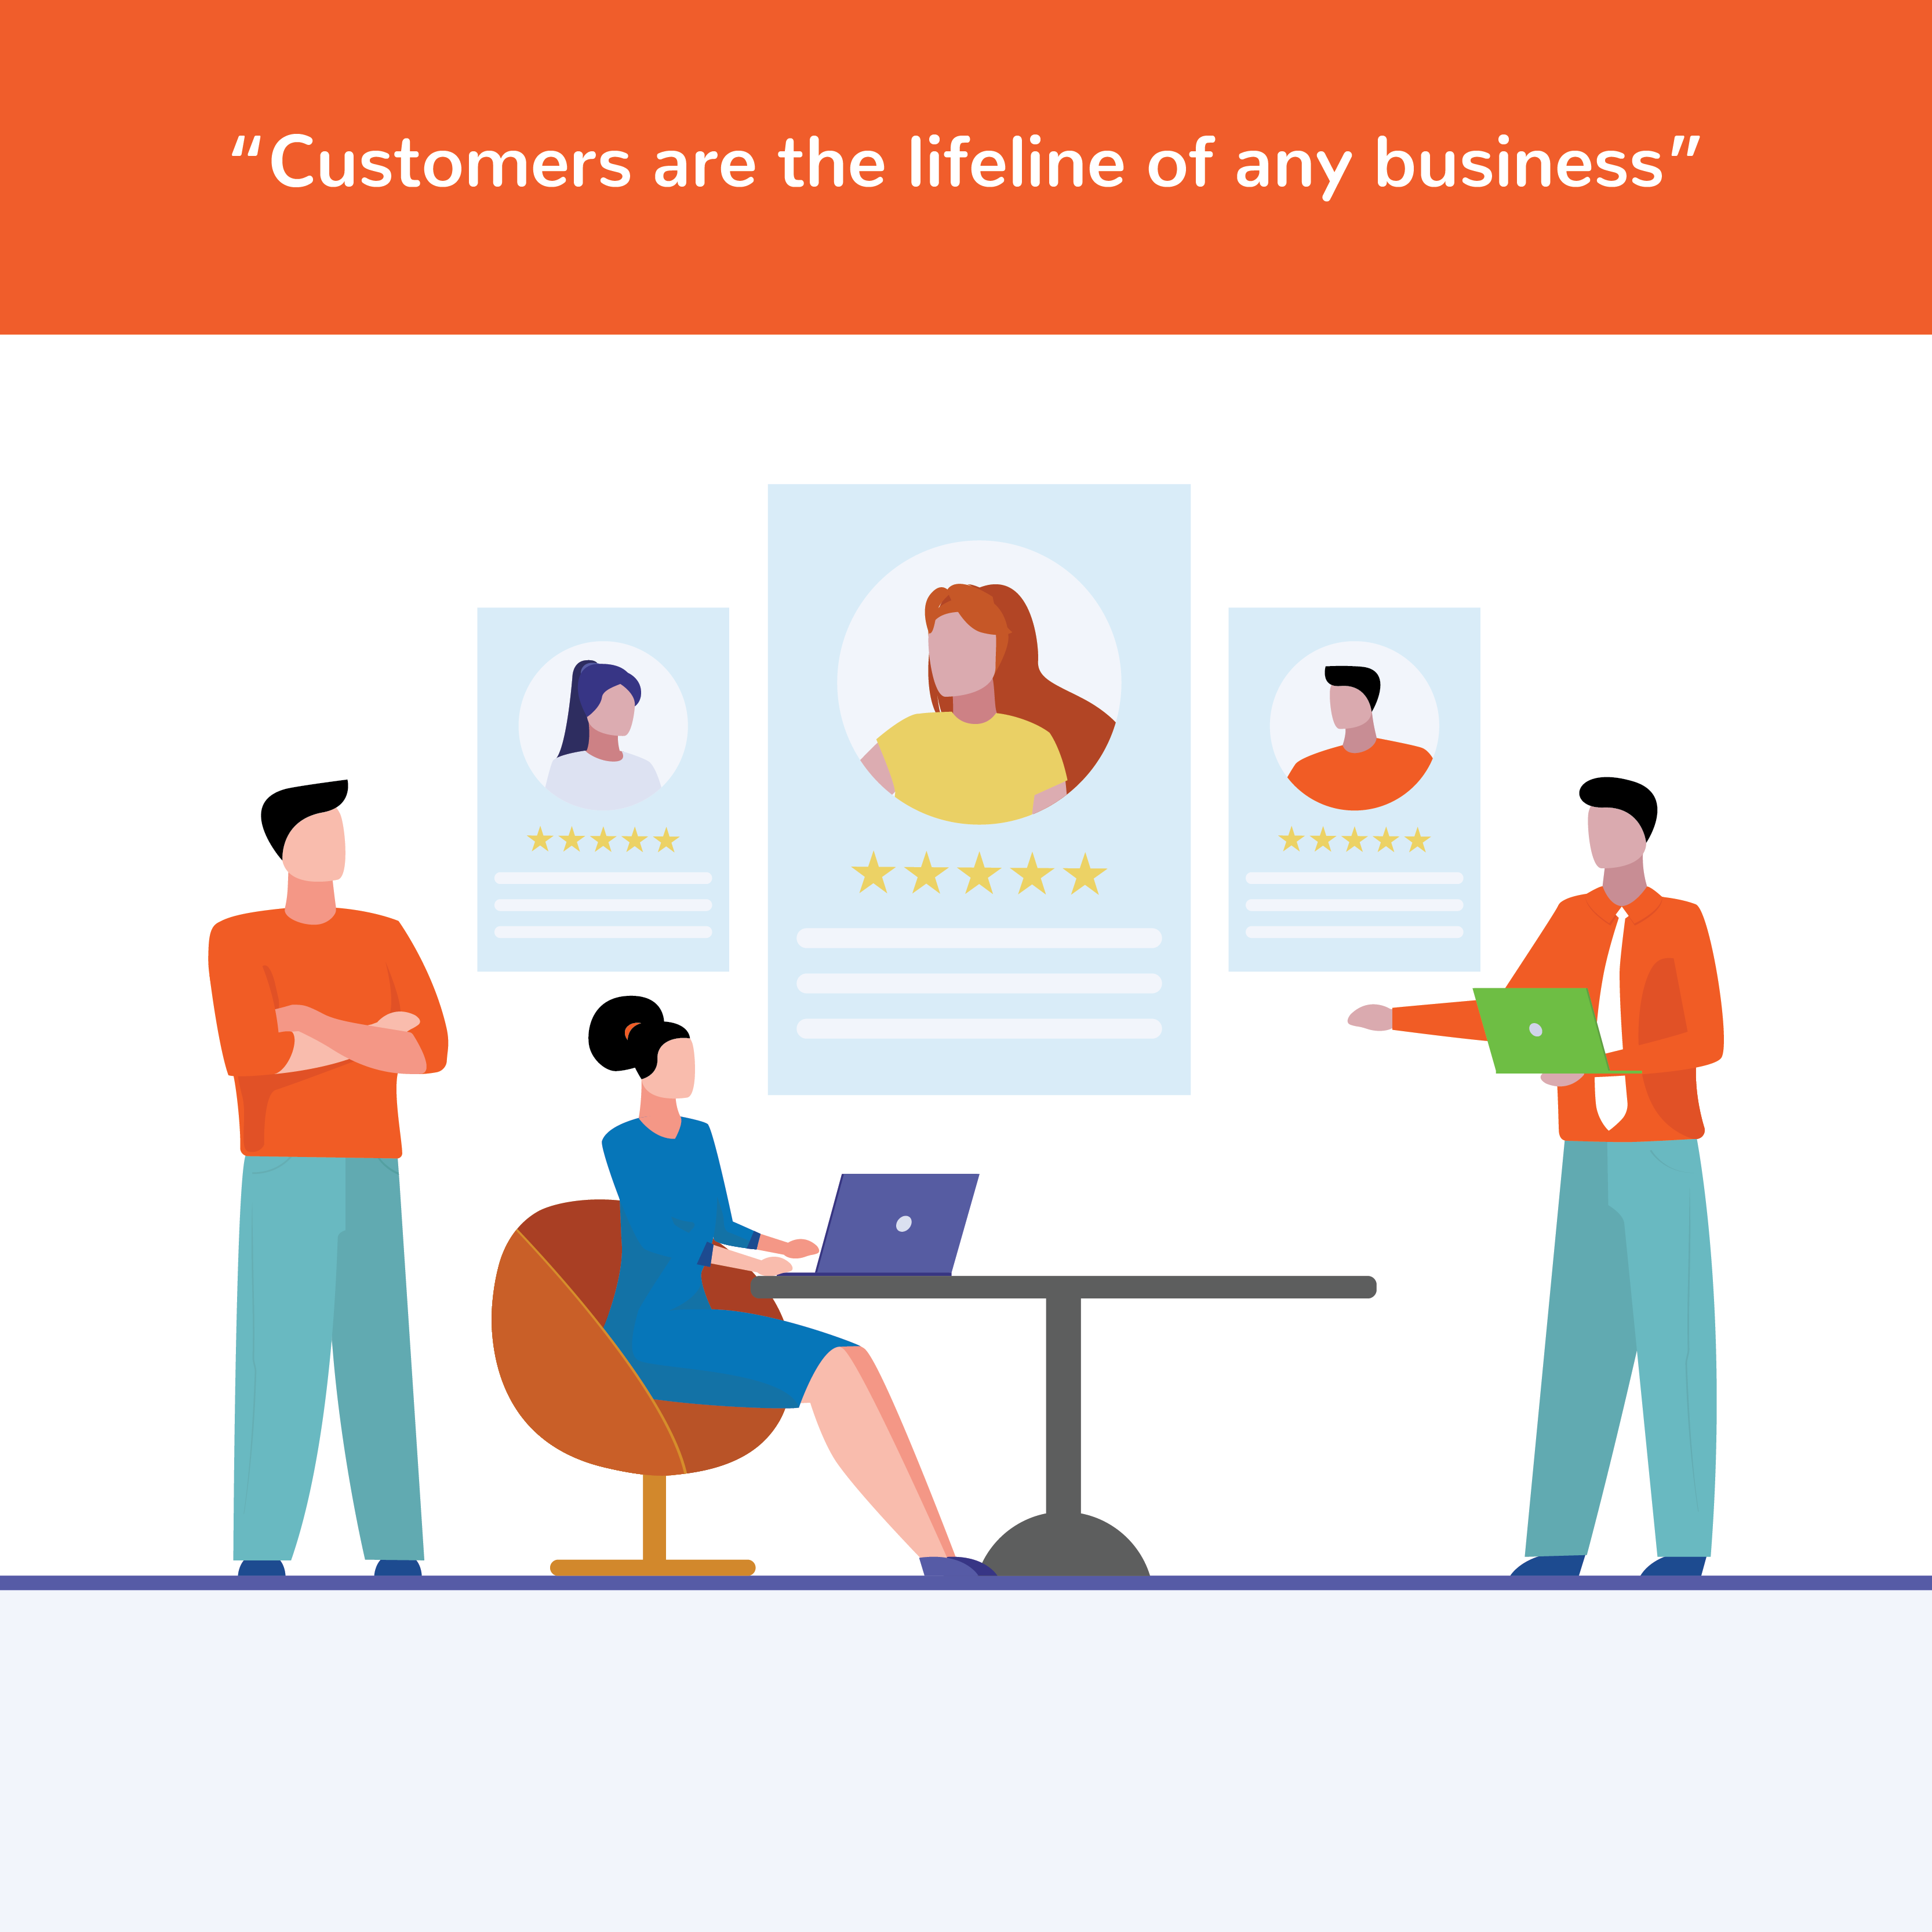 Customers are the lifeline of any business